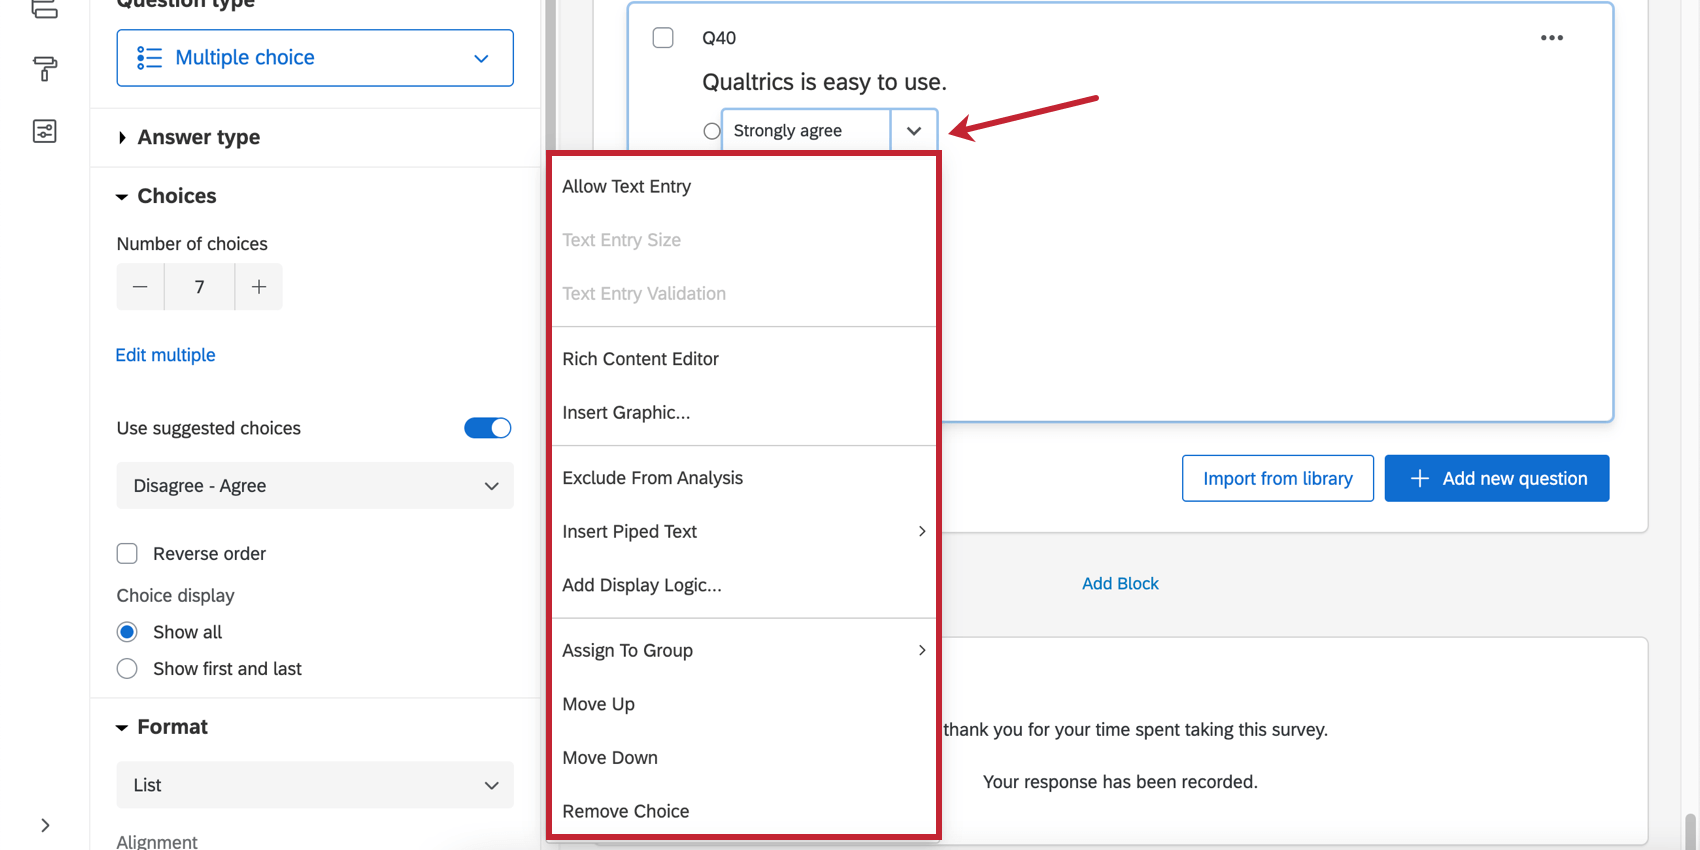 The dropdown arrow next to a choice being edited expands into a menu